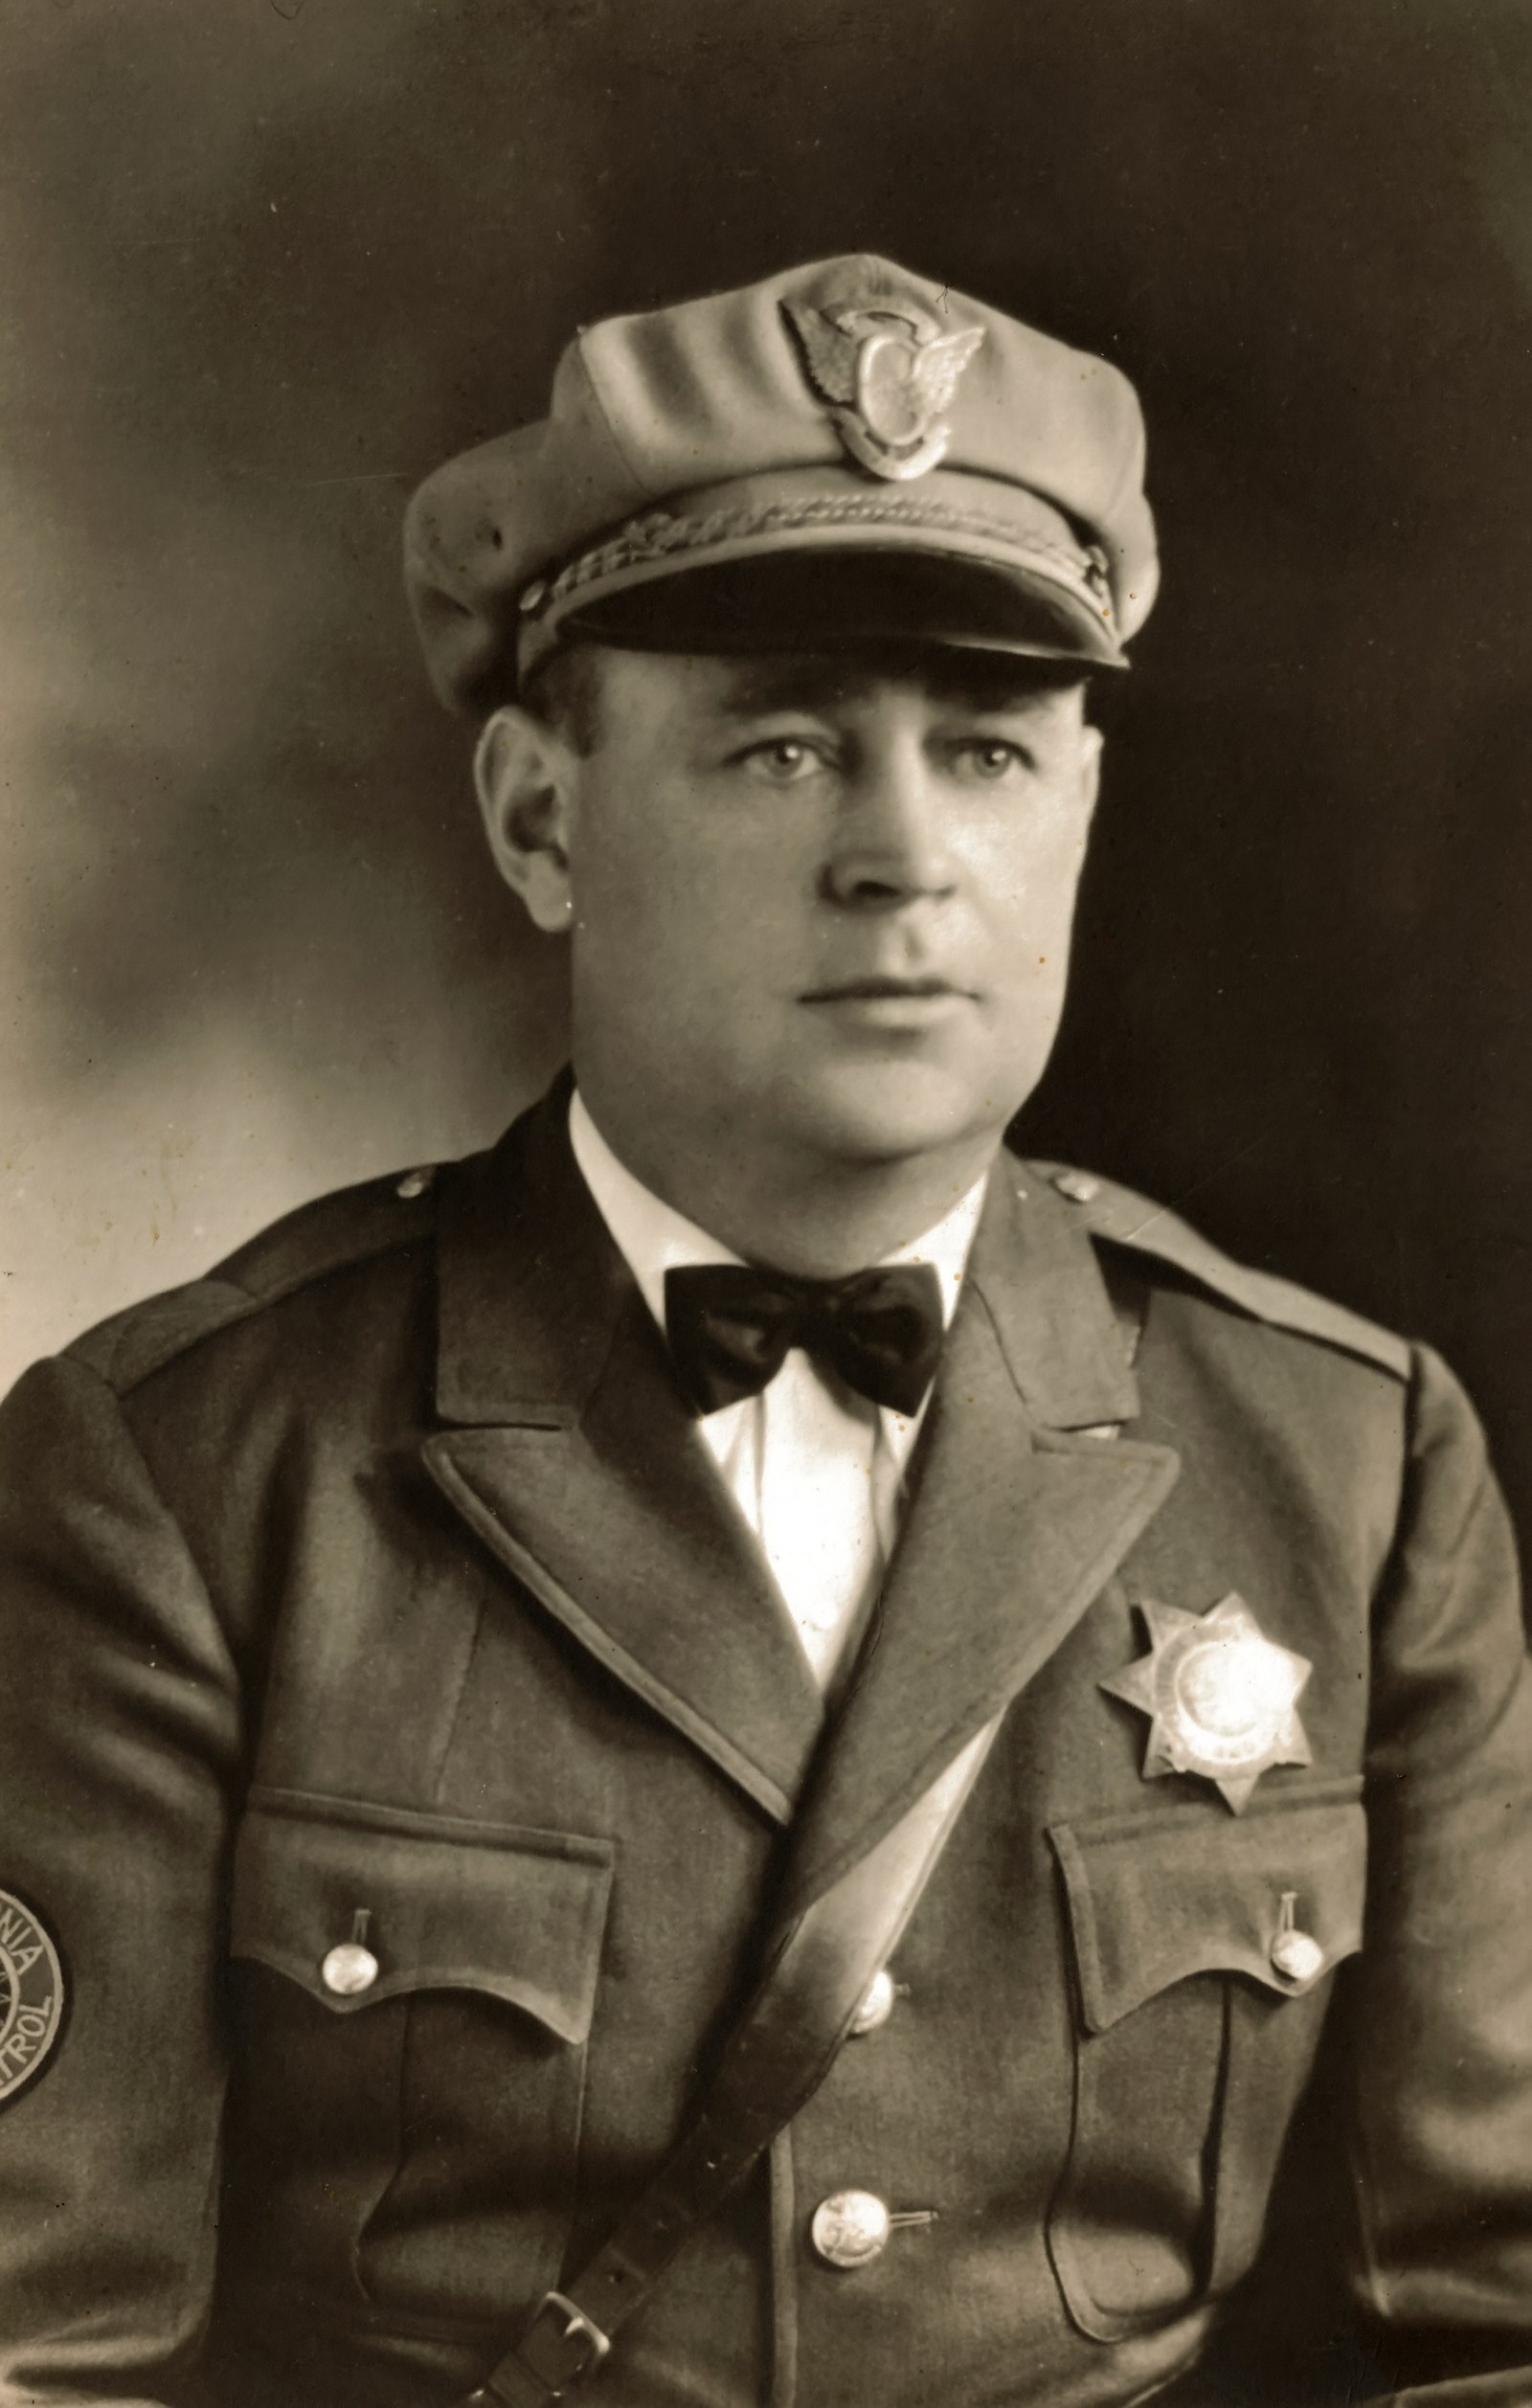 Officer John A. Daroux | California Highway Patrol, California